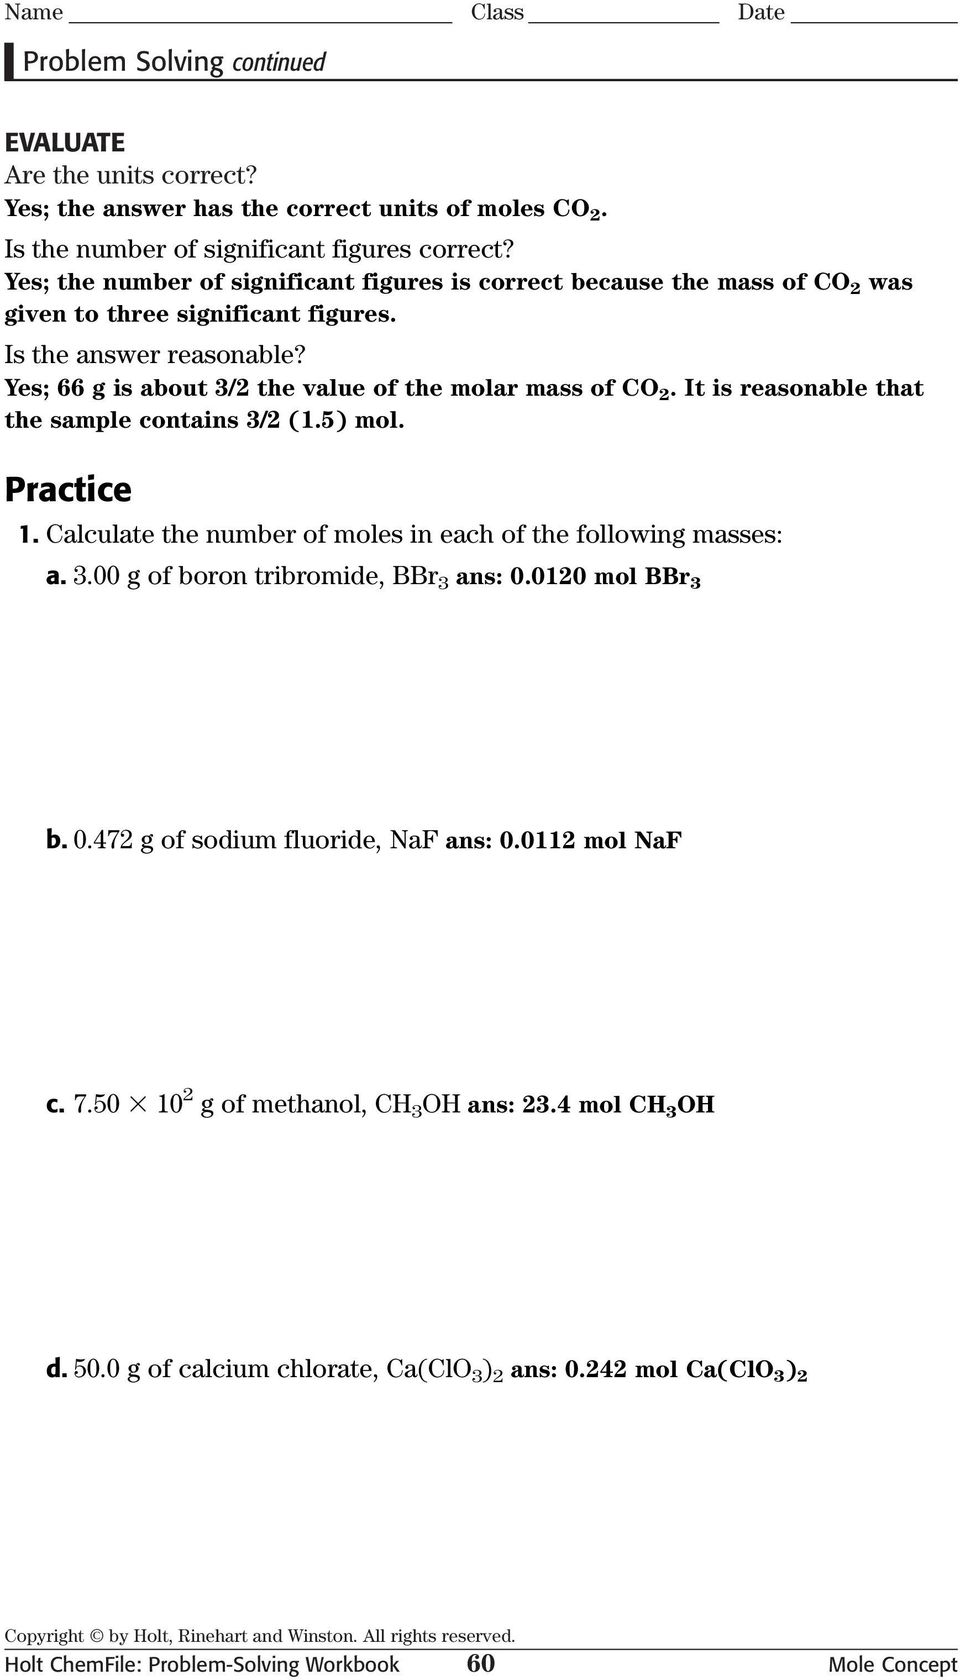 holt chemfile problem solving workbook mole concept answers